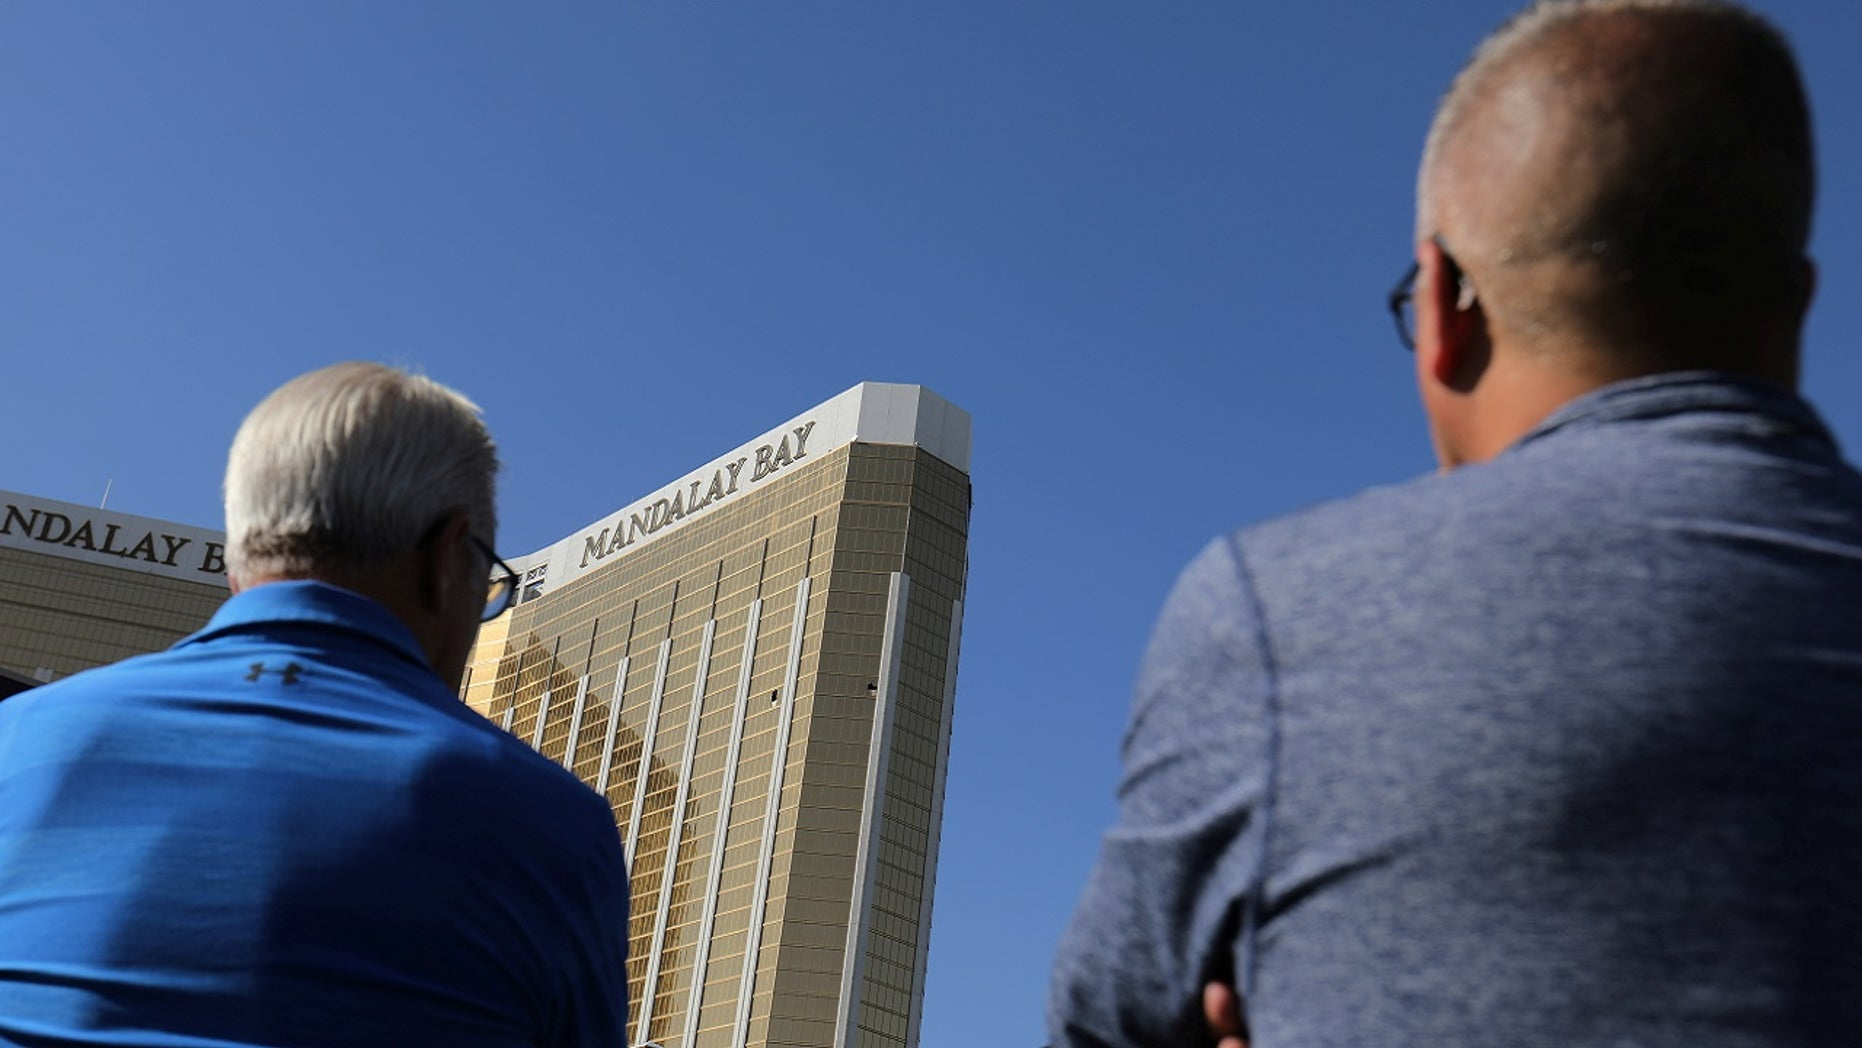 Tourists look up at the broken windows on the Mandalay Bay hotel where shooter Stephen Paddock conducted his mass shooting along the Las Vegas Strip in Las Vegas, Nev., October 4, 2017. The hotel will be renumbering its floors, a report said Thursday.